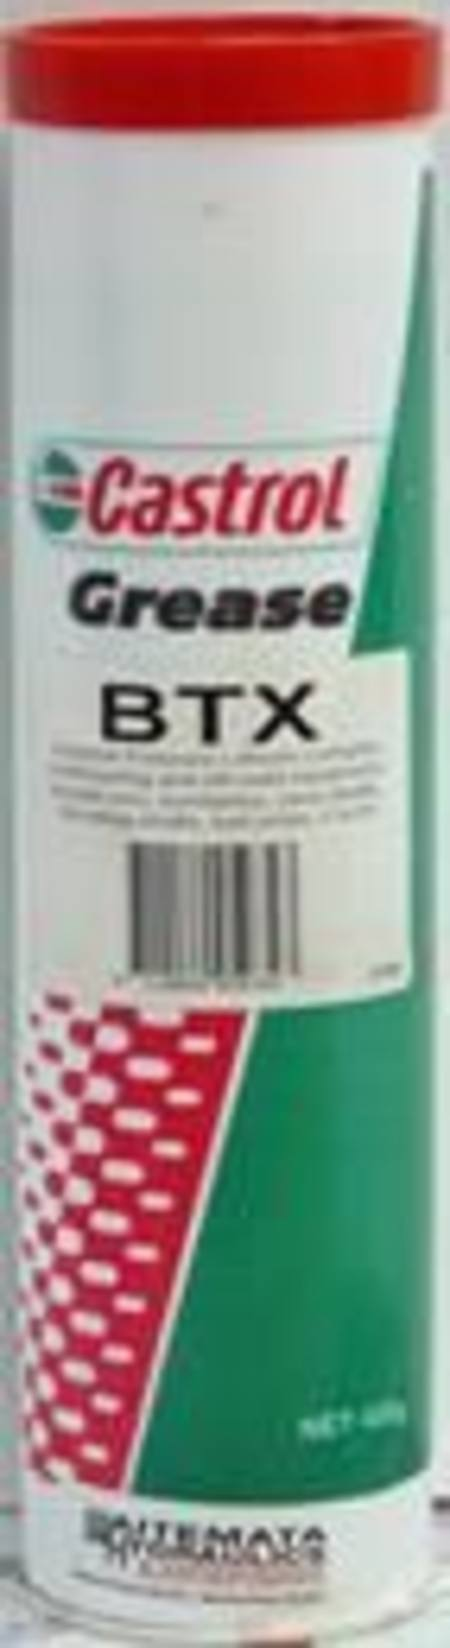 CASTROL BTX GREASE 450gm CARTRIDGE